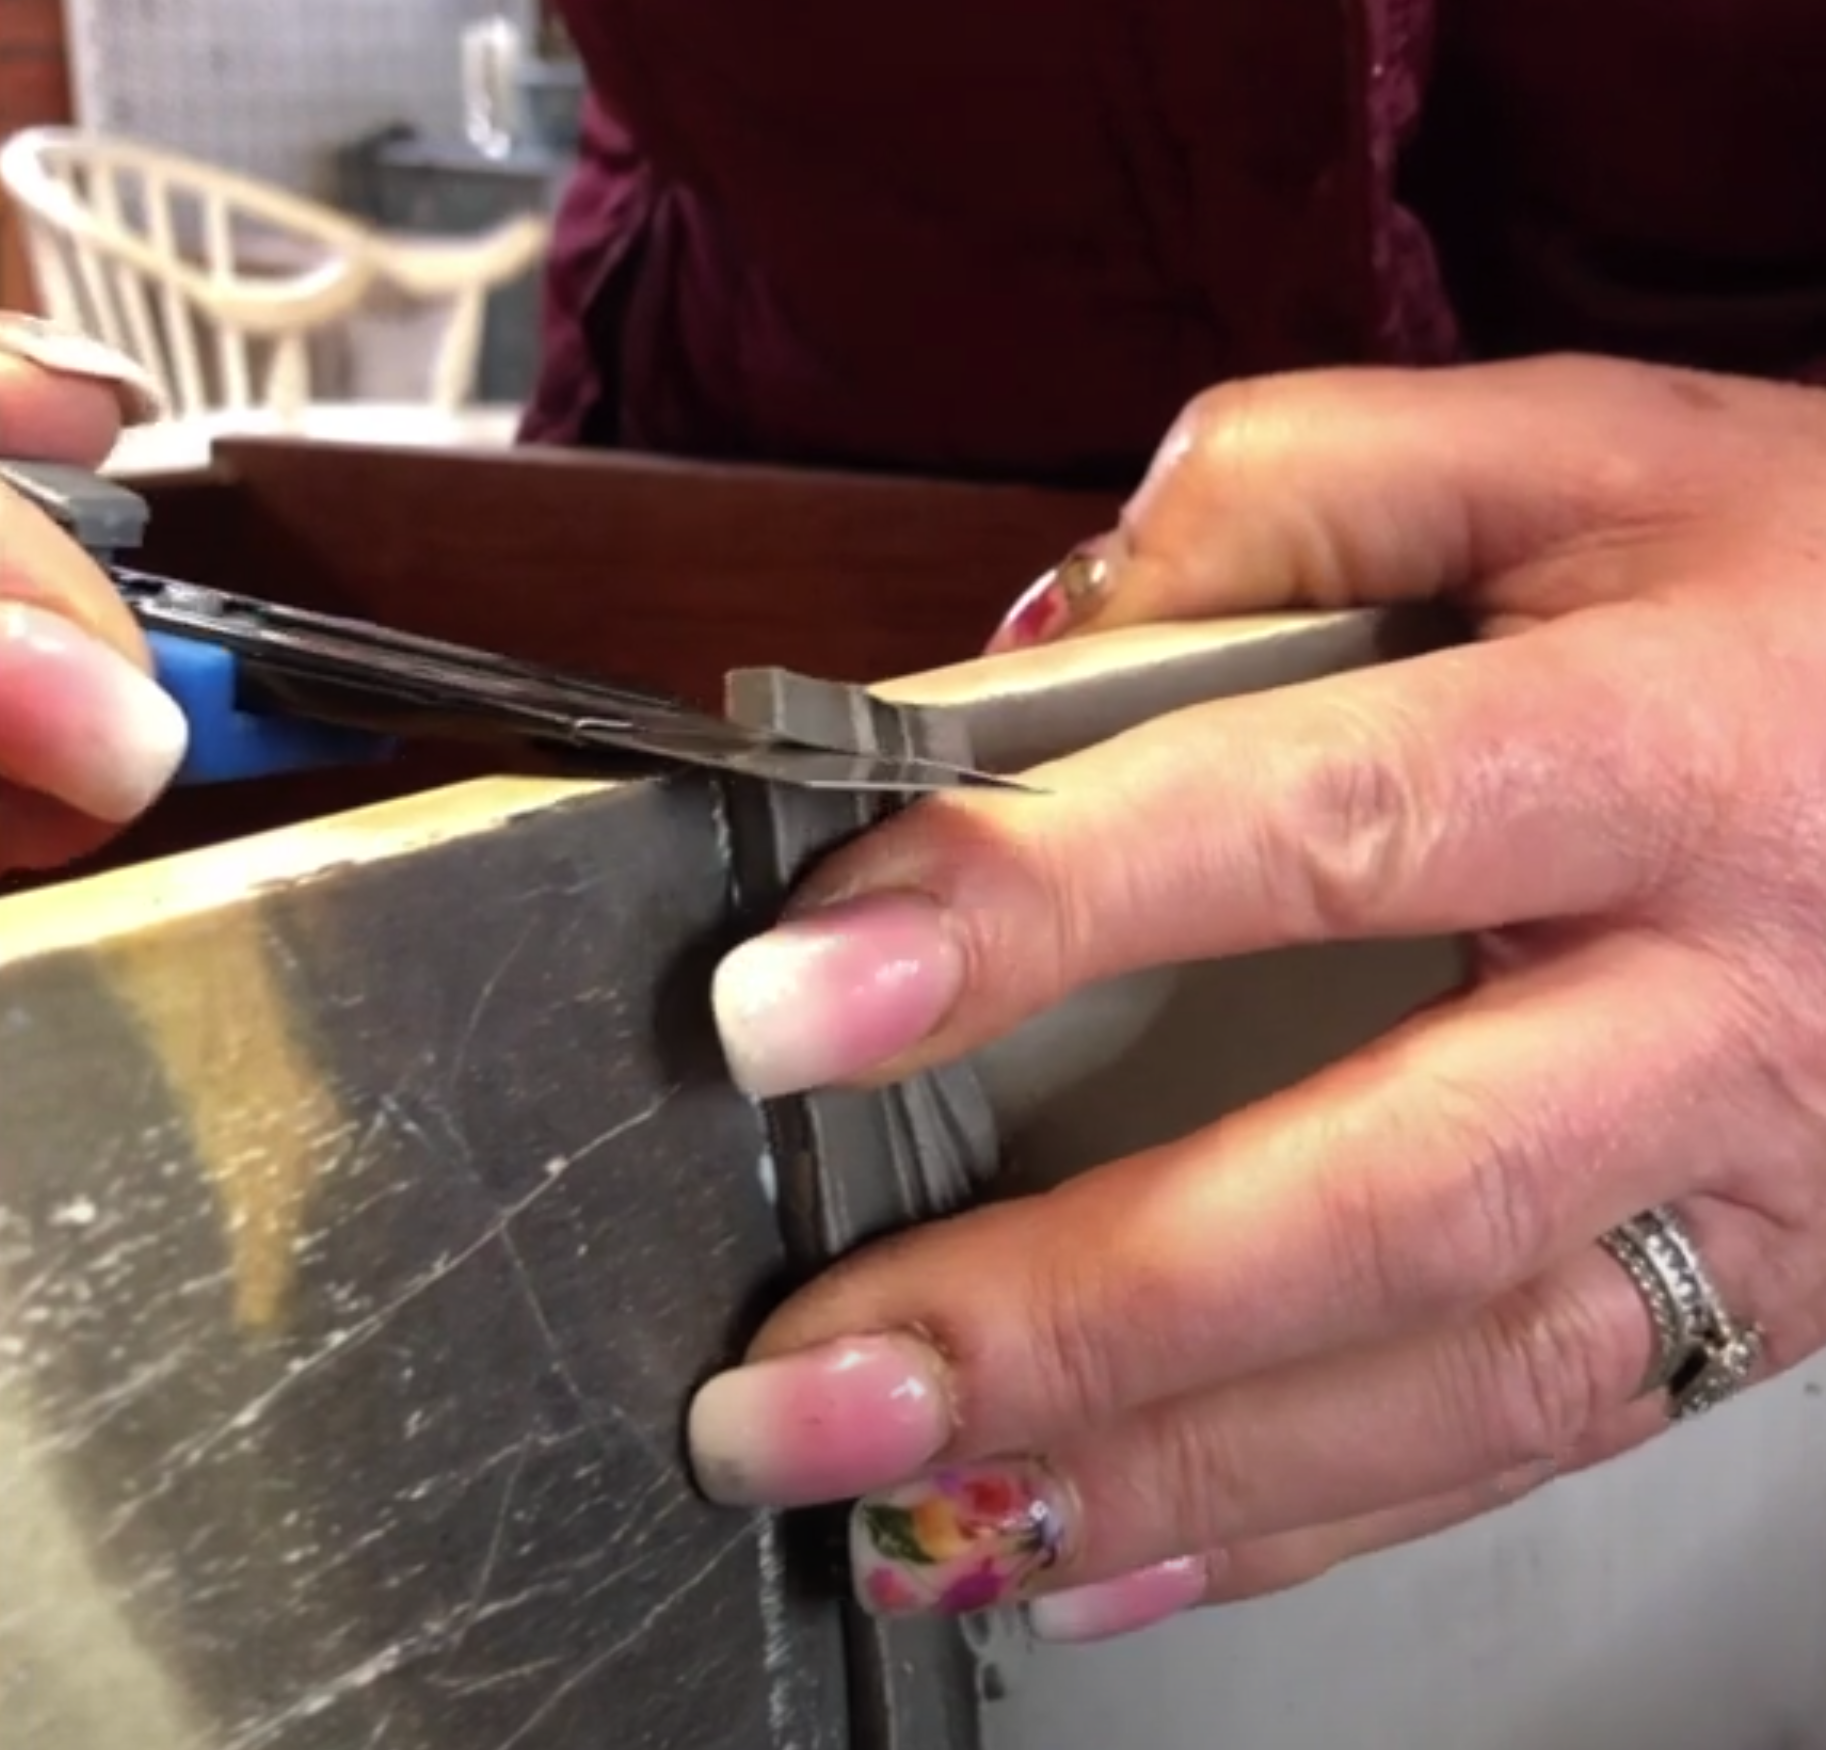 Slicing warmed mouldings with a Stanley knife